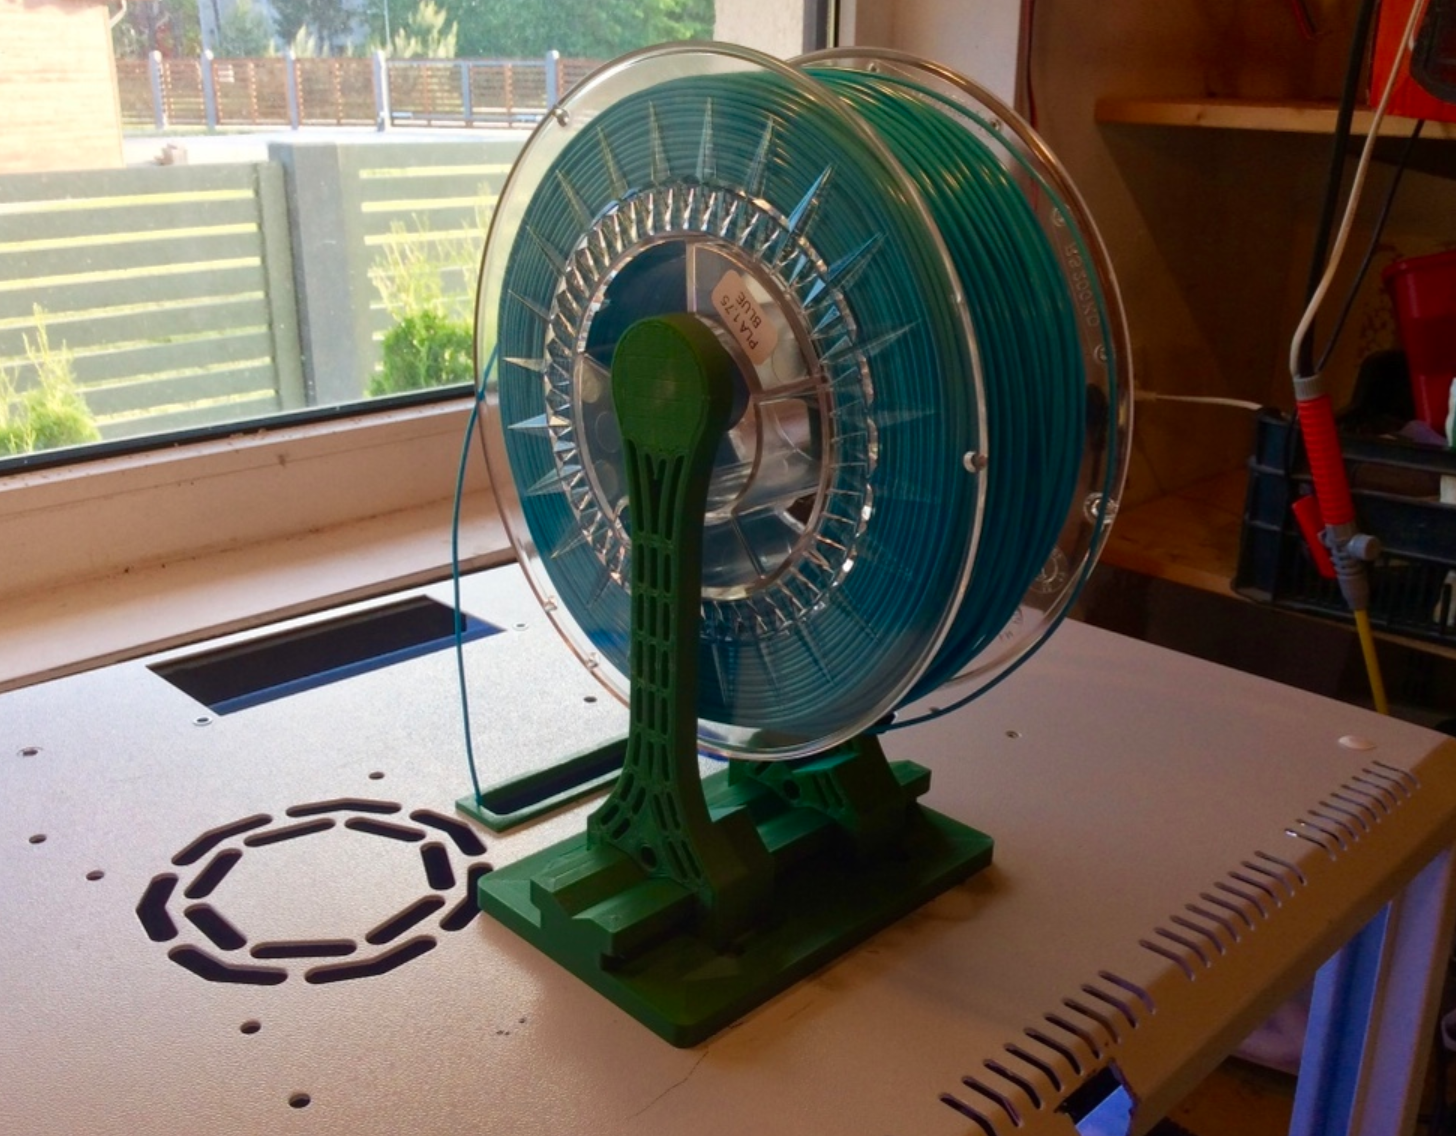 Capture d'écran 2017-10-19 à 15.52.00.png Download free STL file Art Deco style spool holder with bearings • Design to 3D print, Opossums